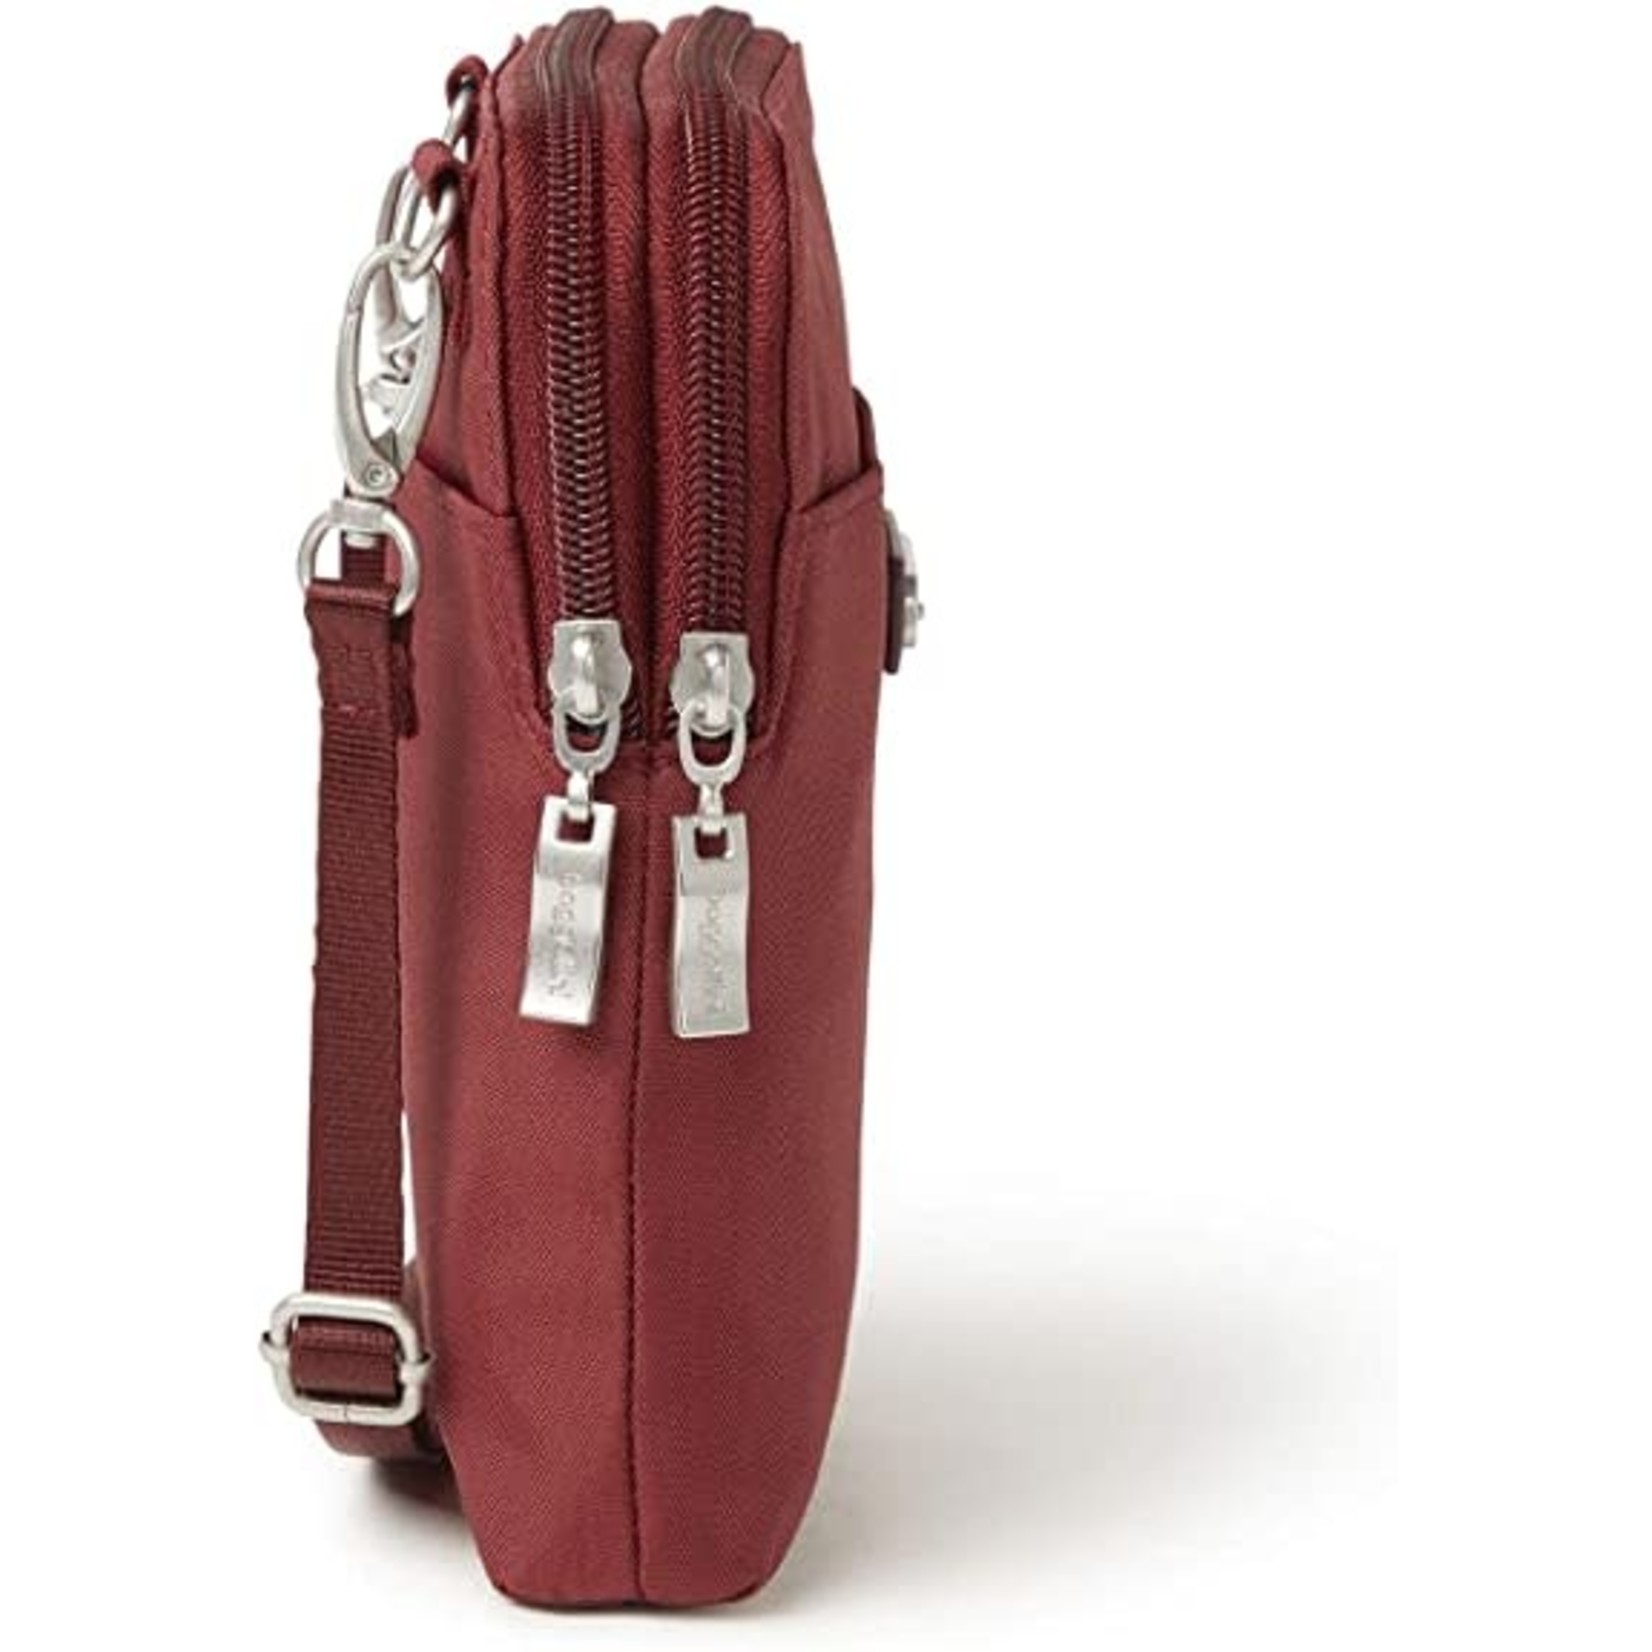 Baggallini Take Two RFID Bryant Crossbody - Russet Red